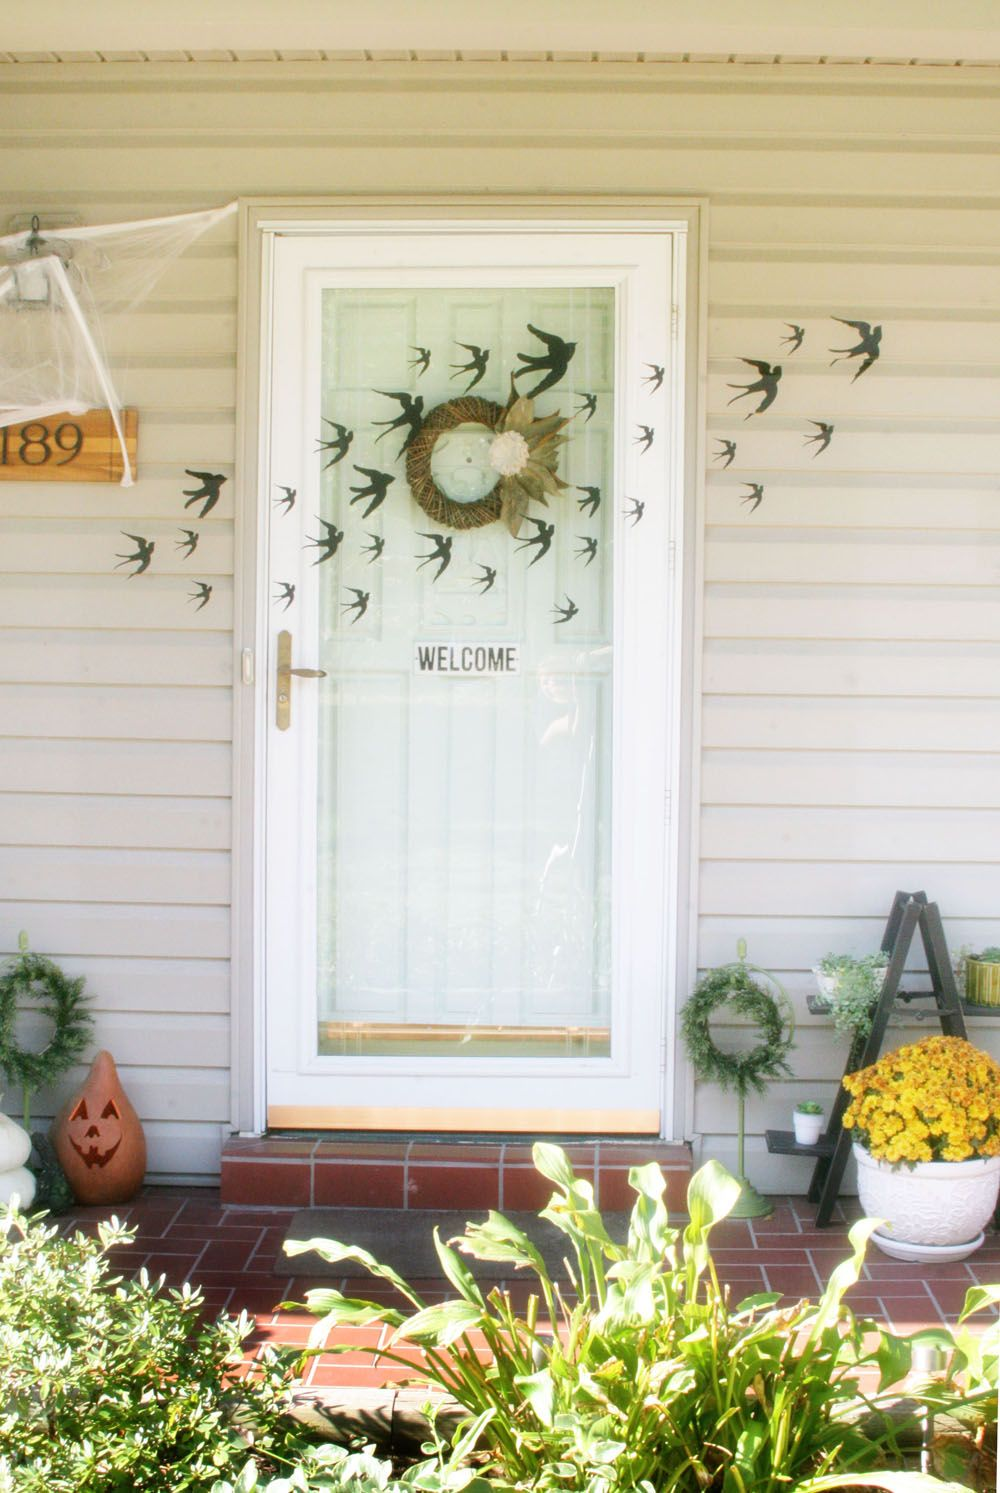 Spooky Halloween Decorations for Kids Spooky halloween decorations - Front Door Halloween Decorations